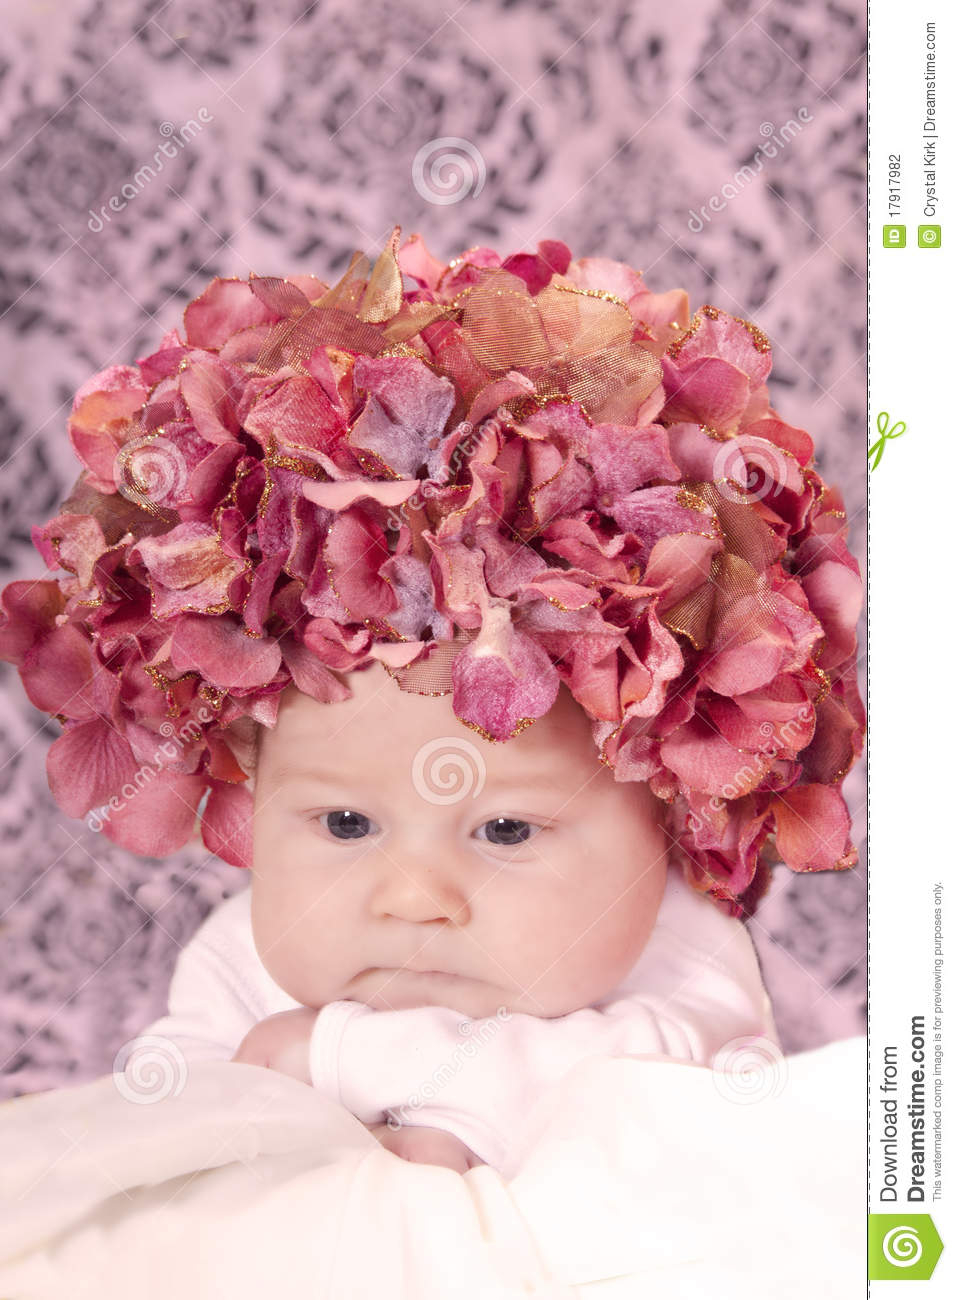 Flower hat baby stock photo. Image of small 706540589